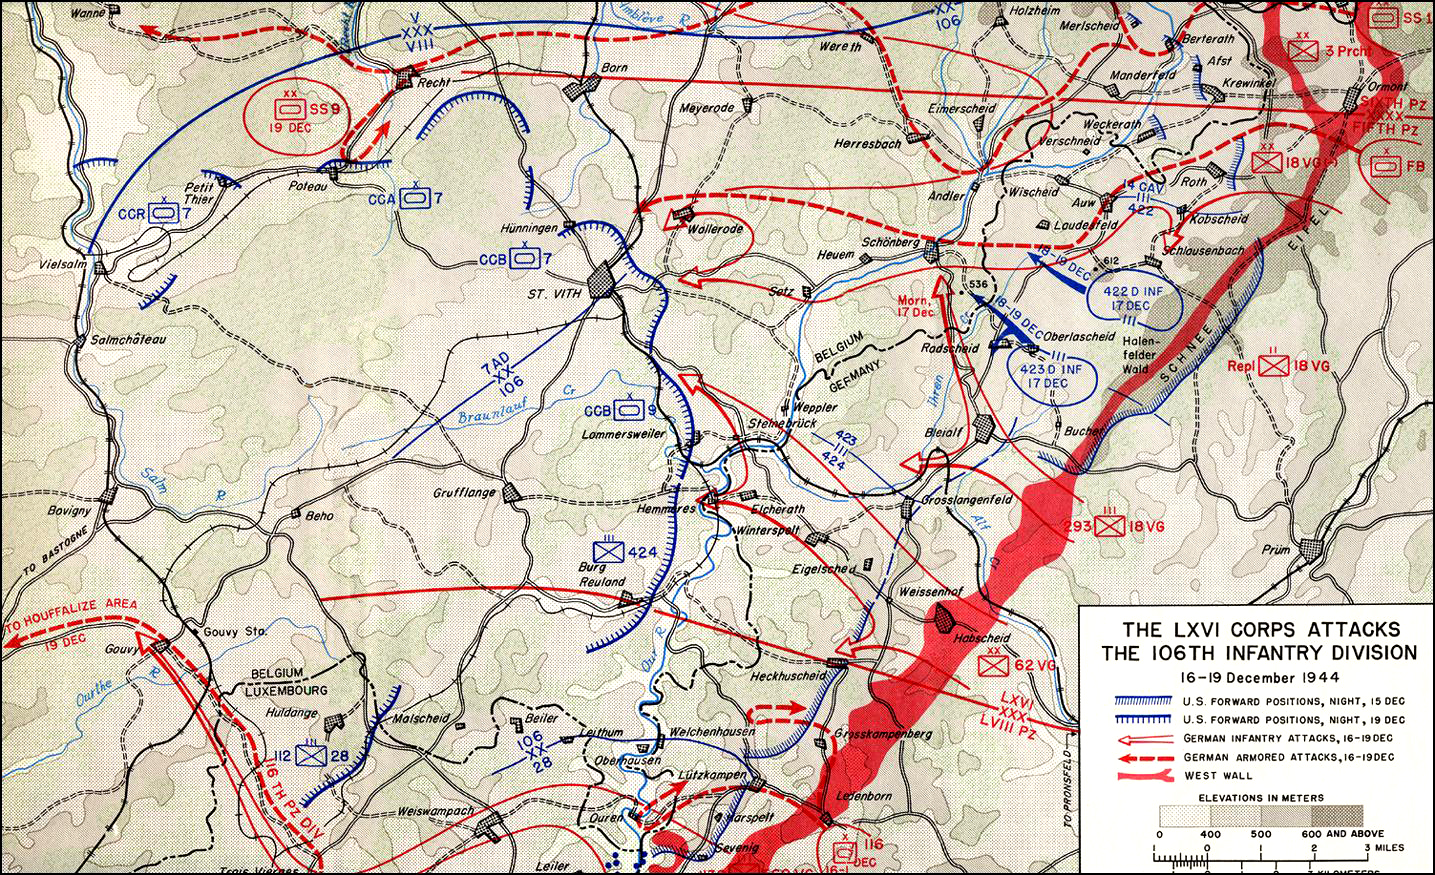 THE ARDENNES: BATTLE OF THE BULGE (Contents)